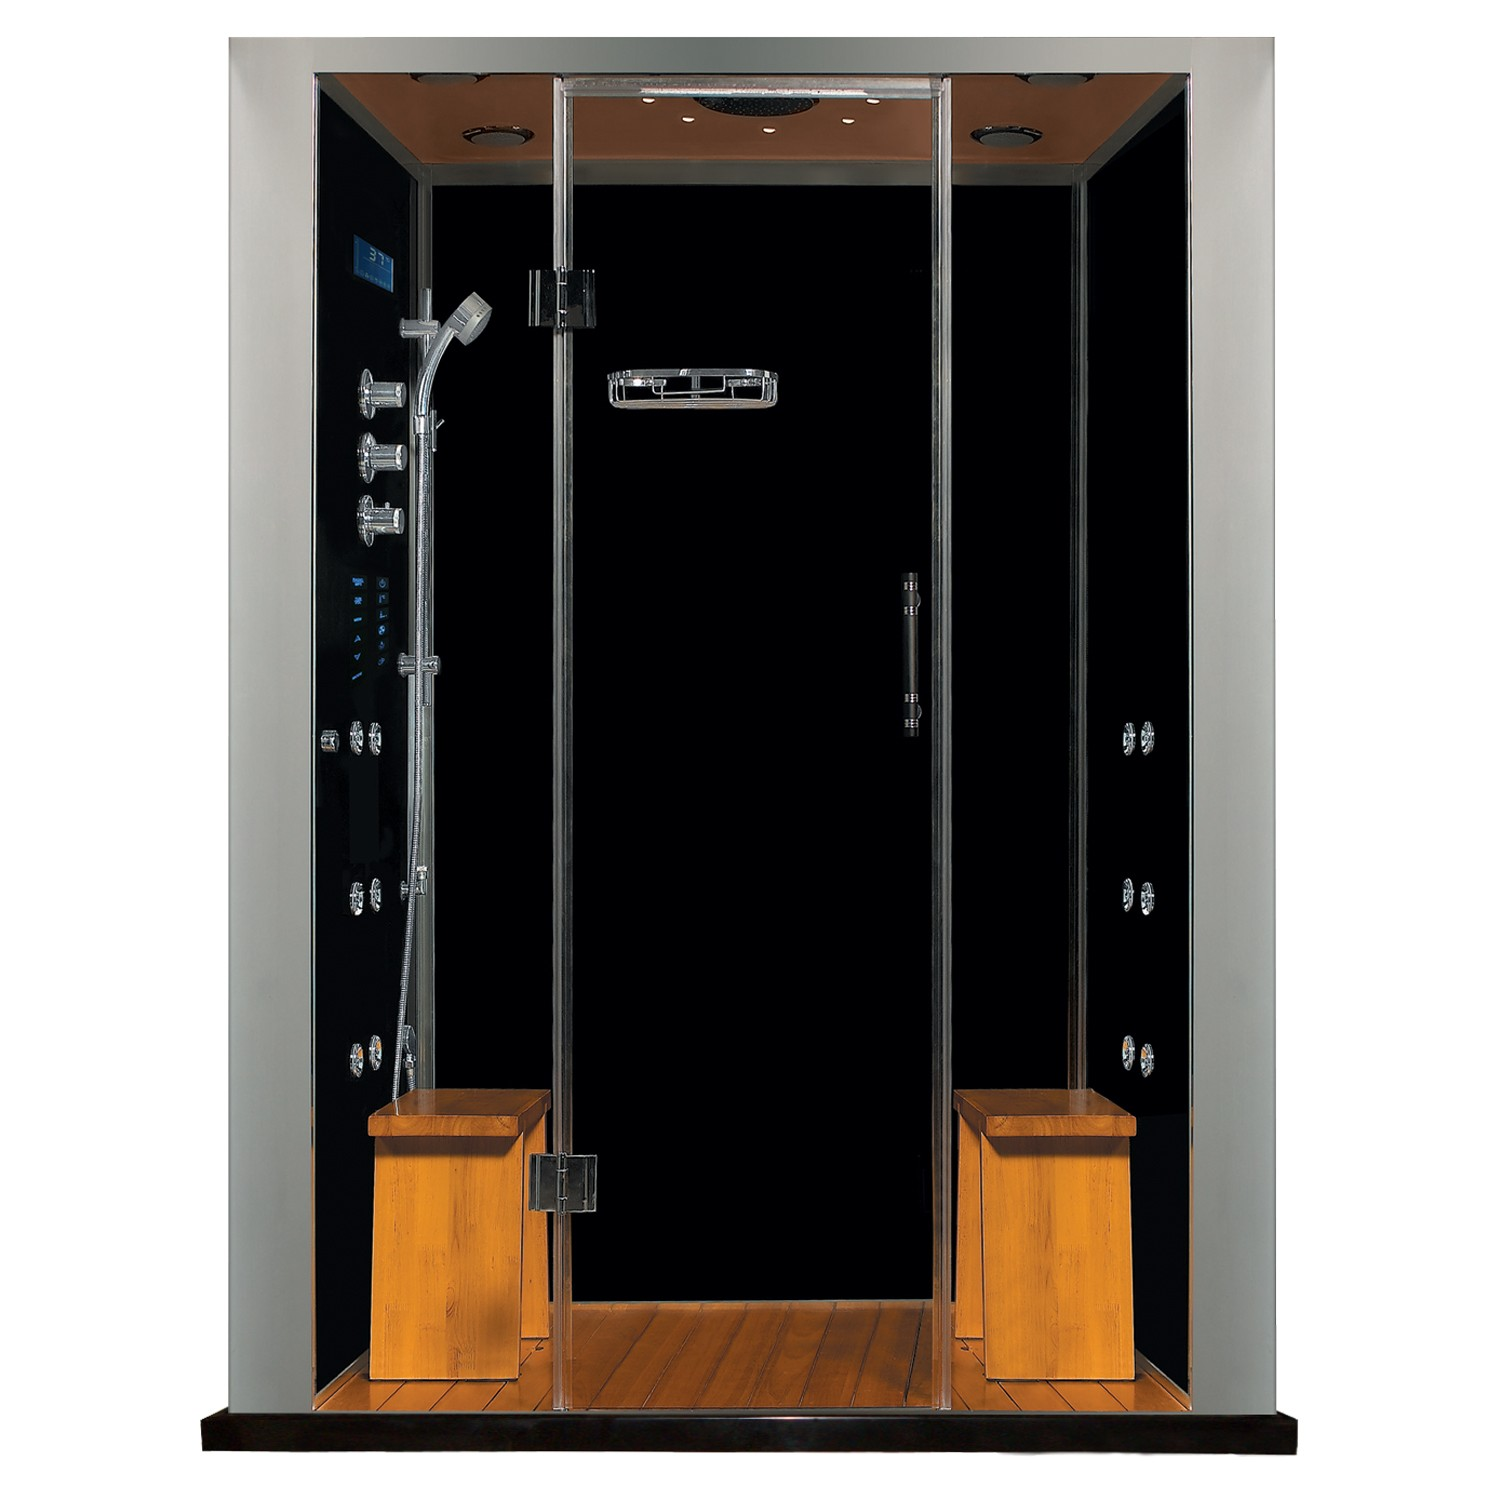 royal care series steam showers ws112_with_stone base